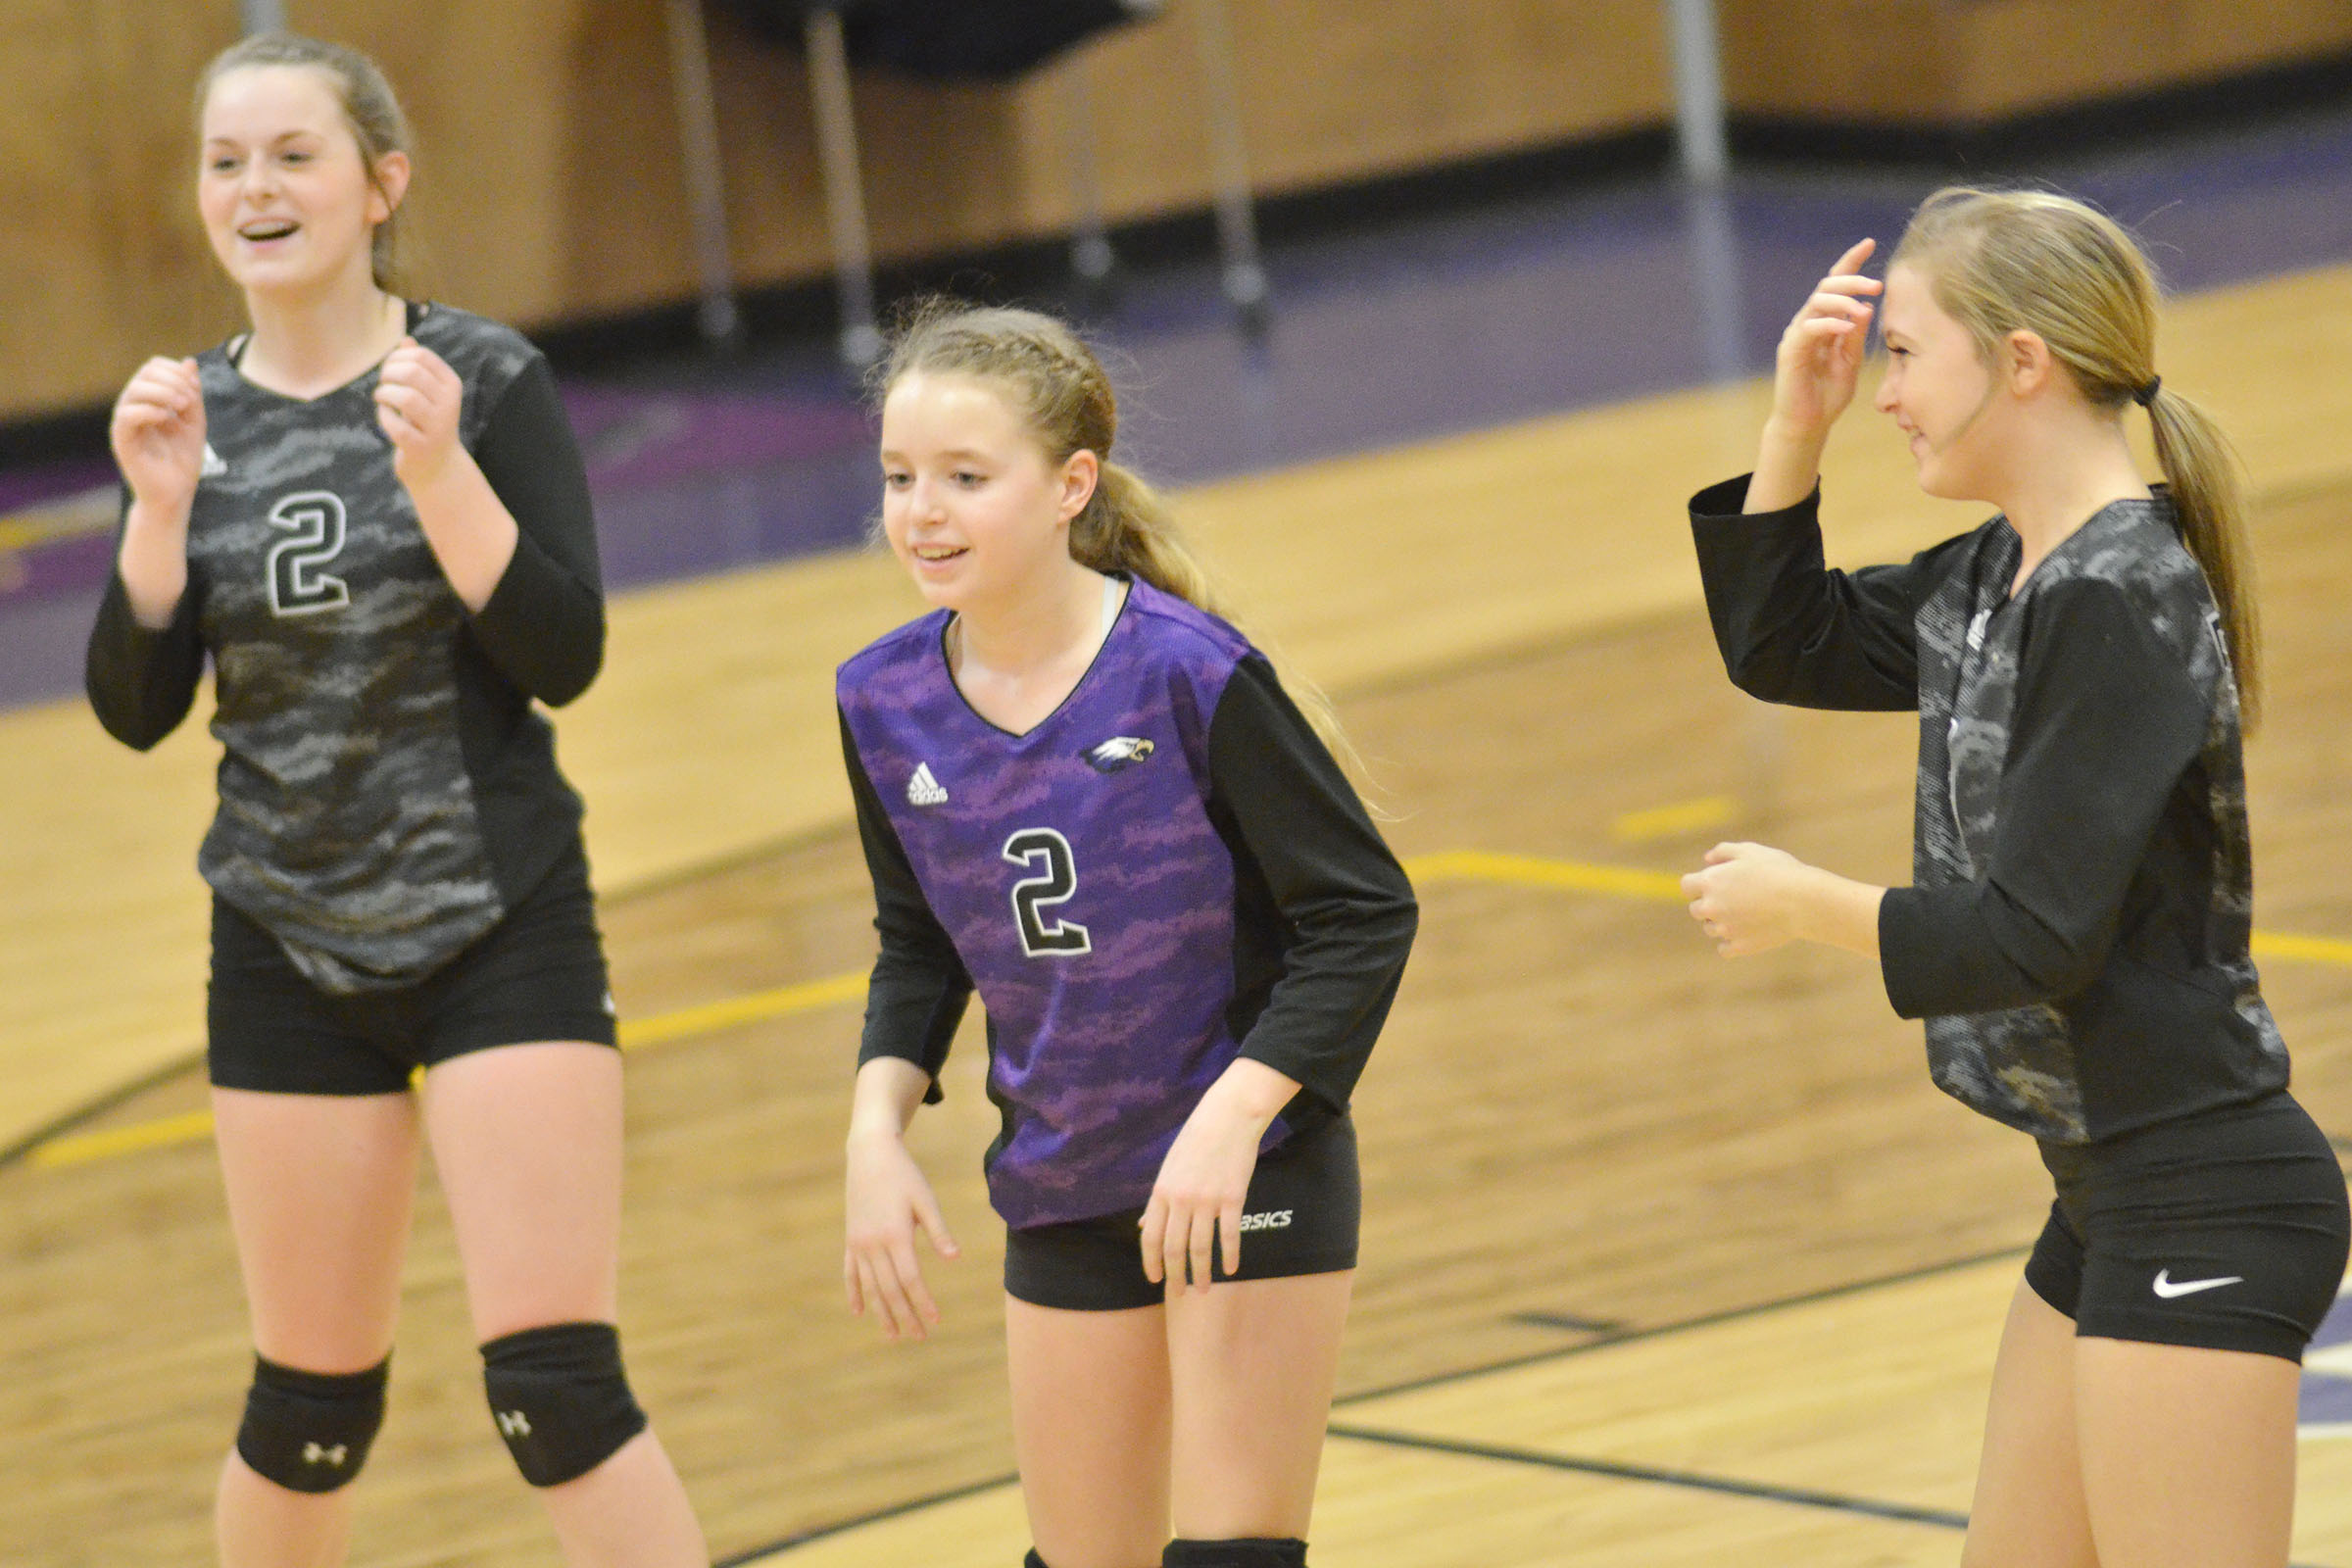 From left, CMS eighth-grader Taylor Knight, seventh-grader Rylee Petett and eighth-grader Carly Adams cheer after a point.